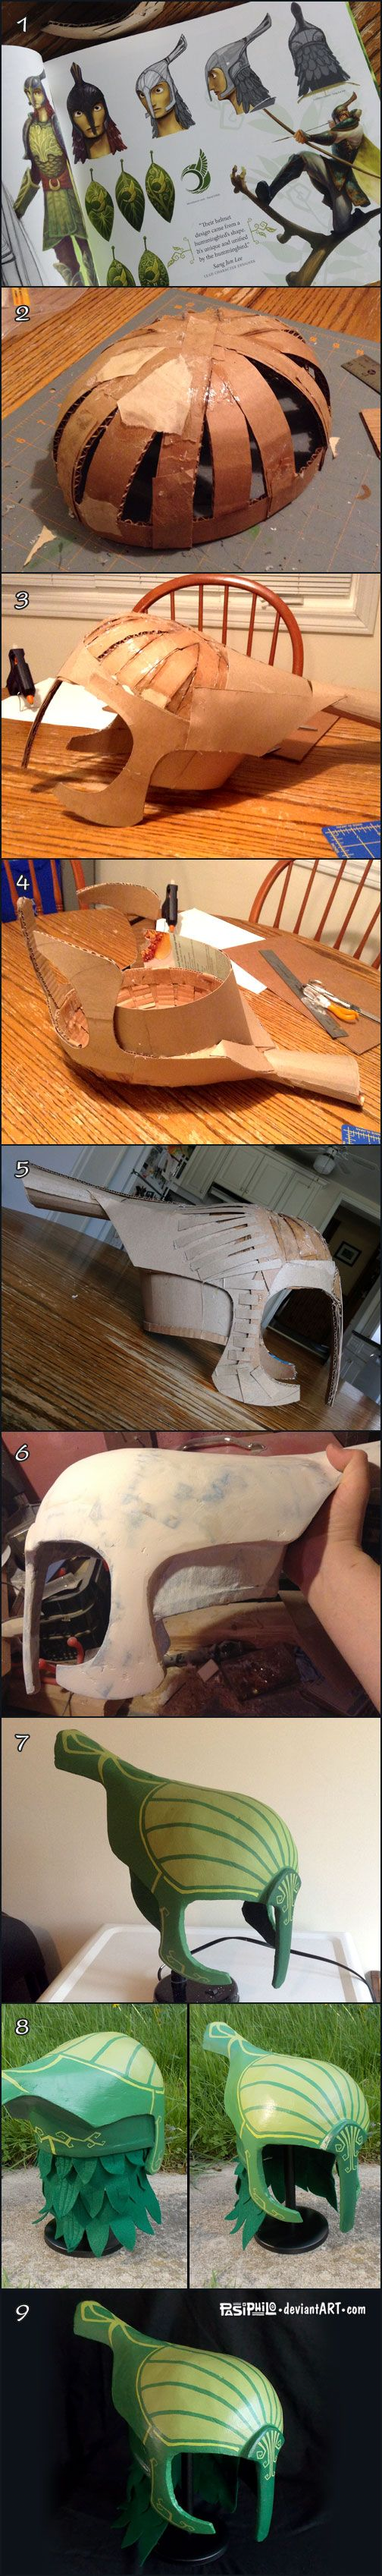 Leaf Man Helmet Creation Process by Pasiphilo.deviantart.com on @deviantART